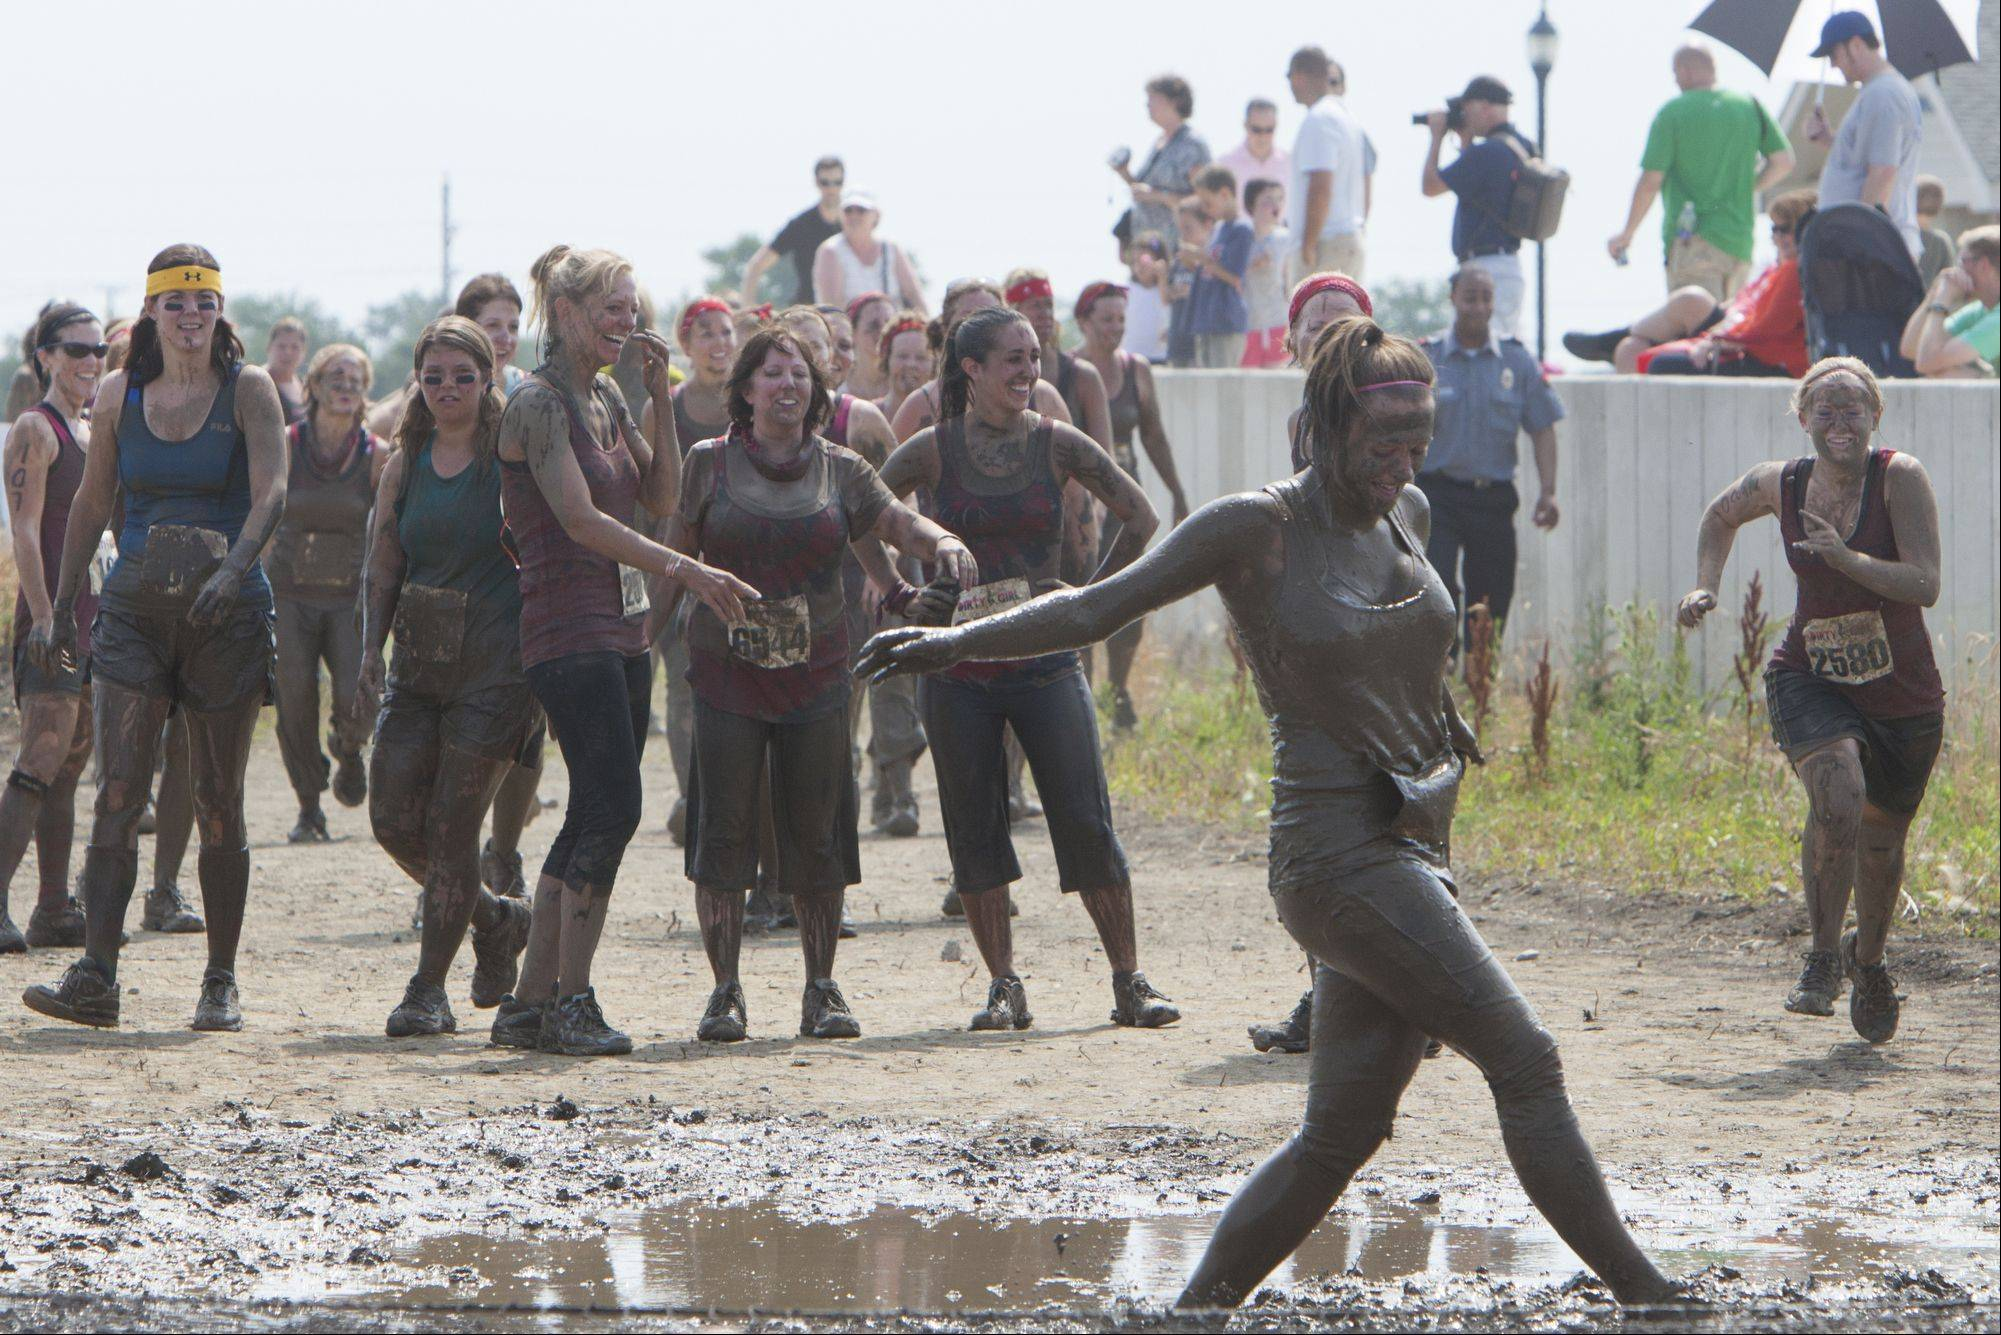 Jackie Newmann of Libertyville attempts to get up after diving into a mud pit as she is cheered on by her teammates during the Dirty Girl Mud Run.